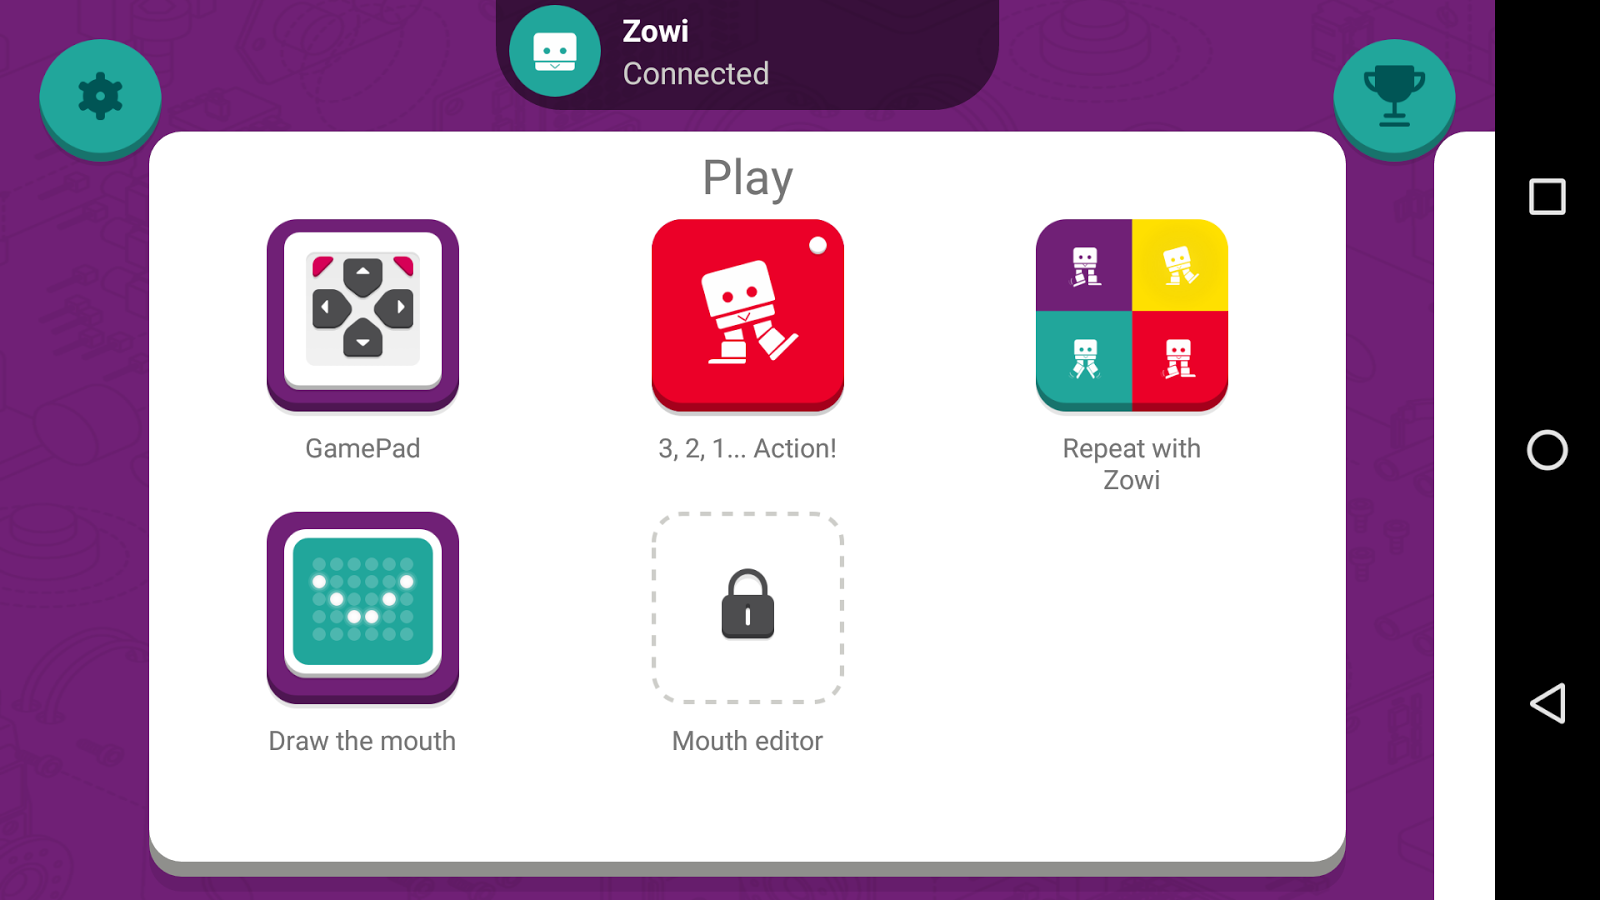 Zowi App 1 4 1 APK Download - Android Education Apps